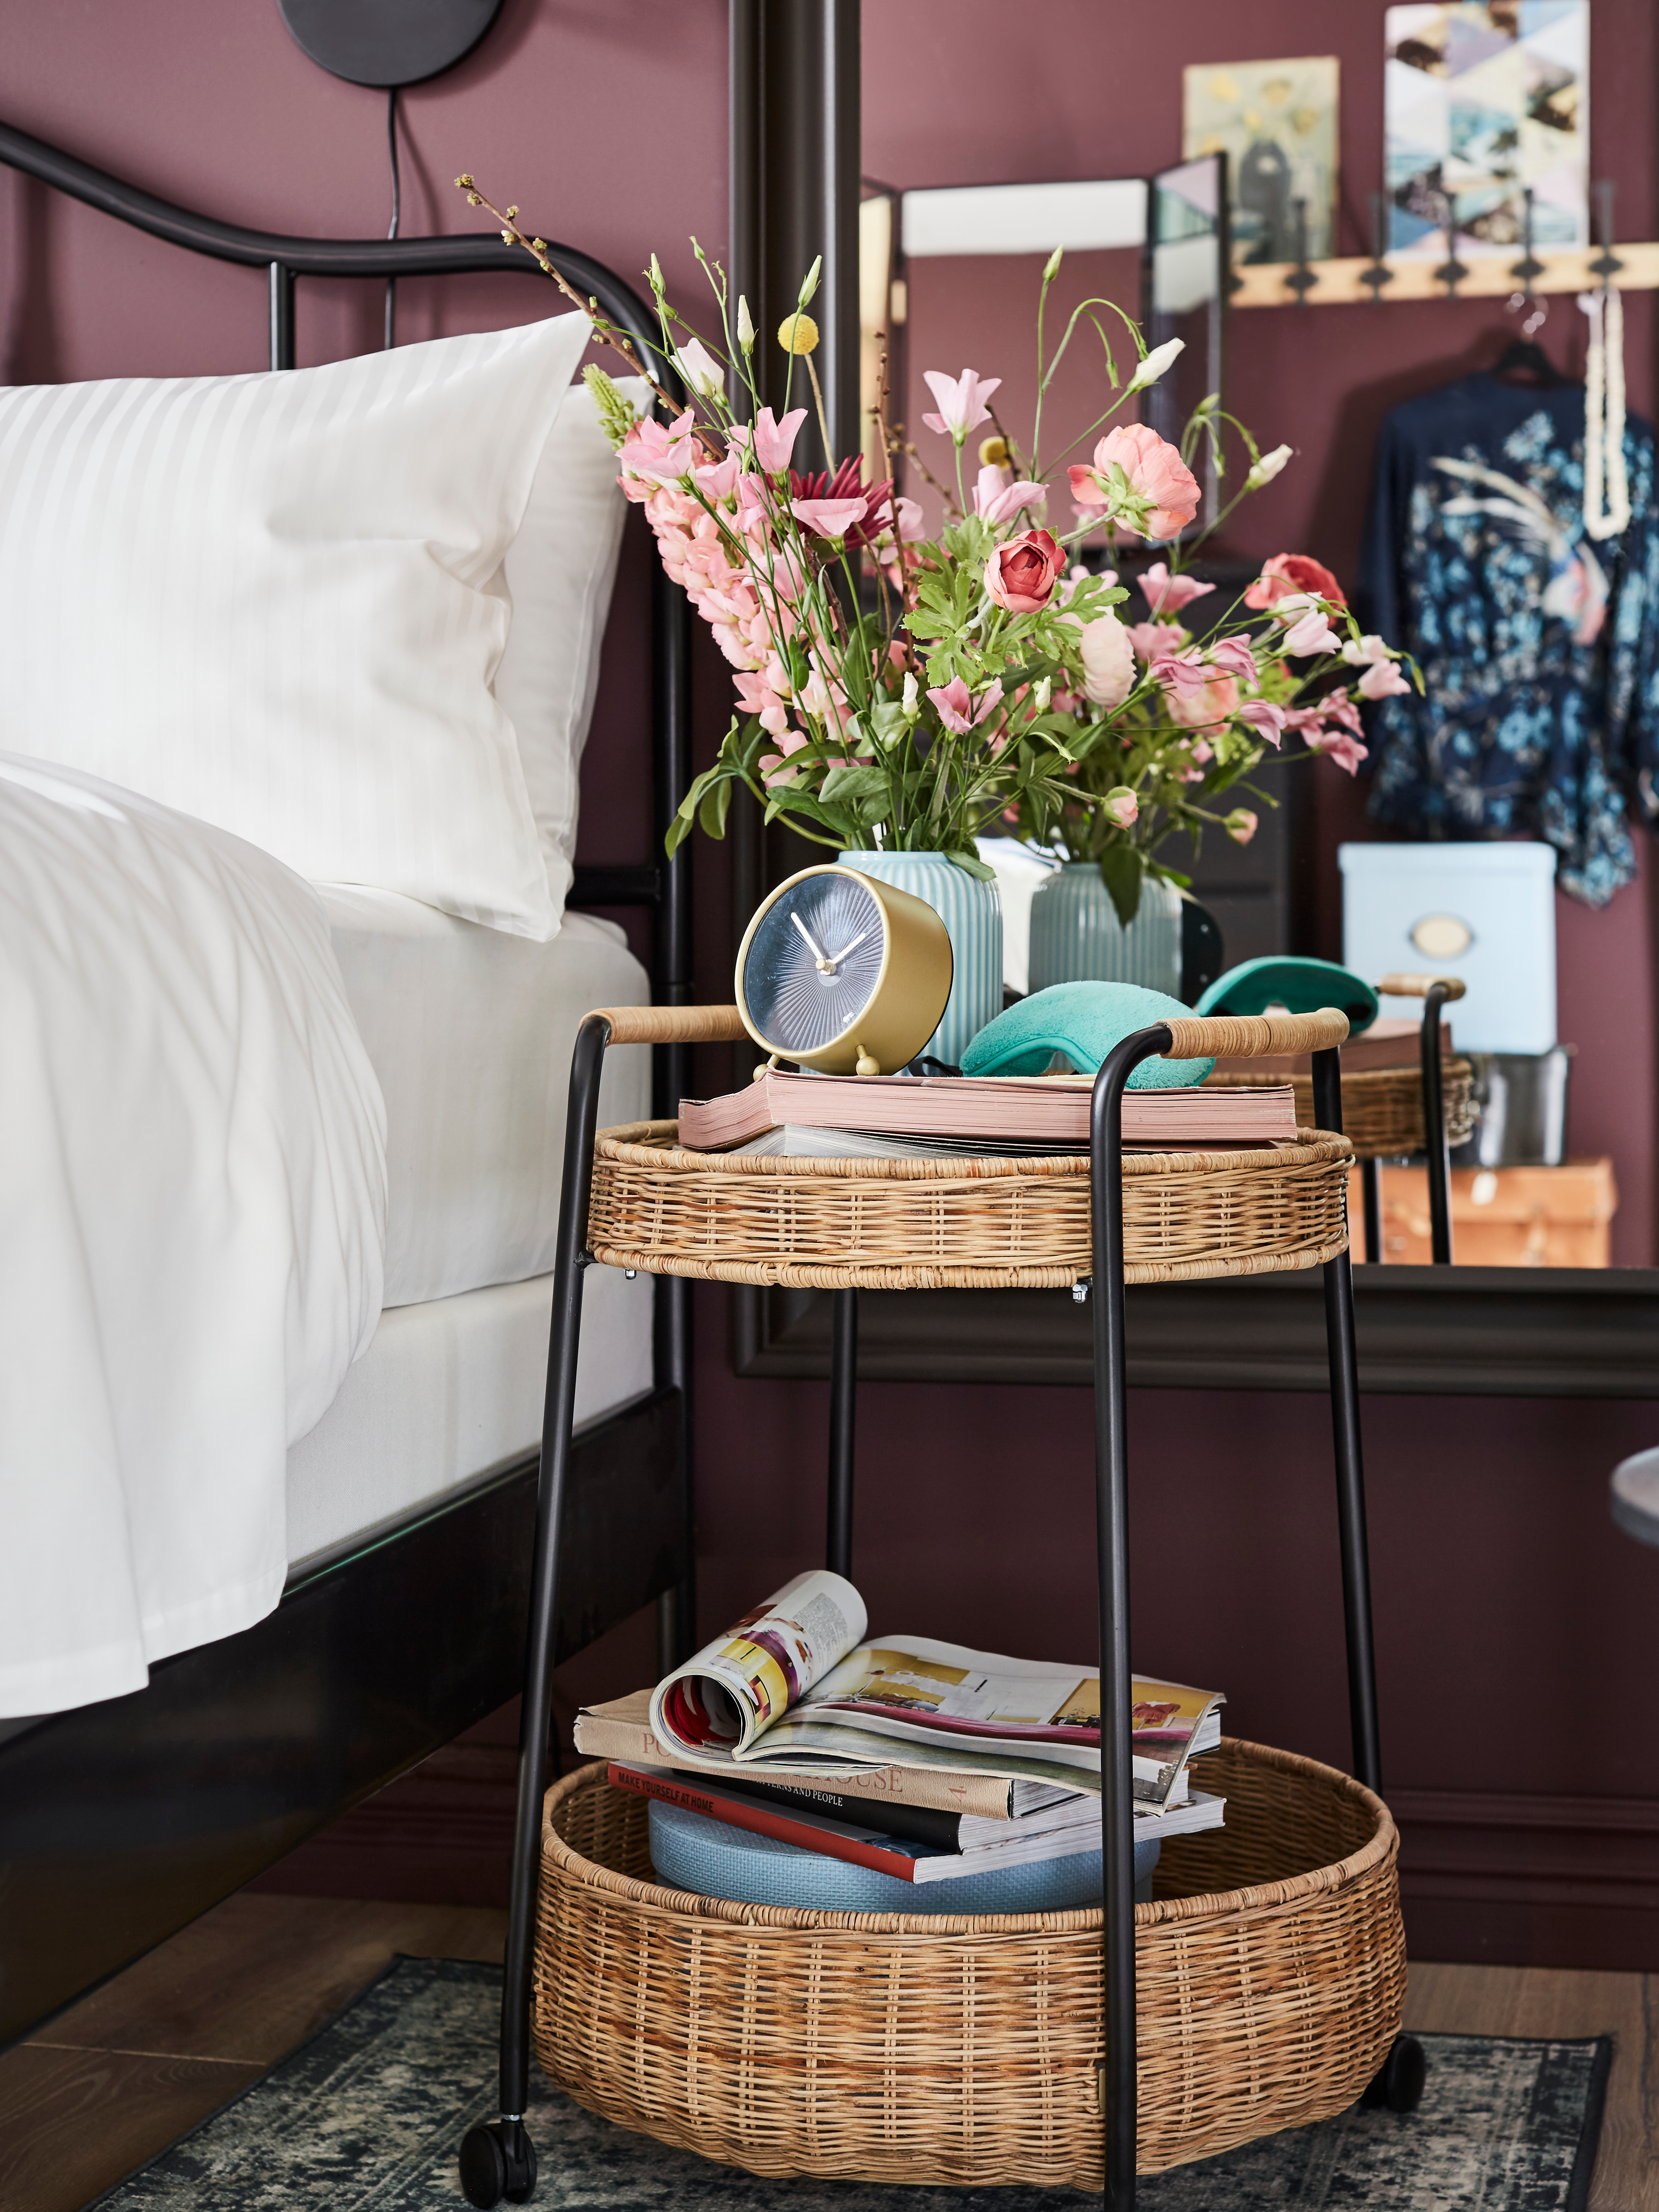 Bedroom with steel bed frame, quilt cover and pillowcases, trolley made of steel and rattan, table clock, rack with hooks.